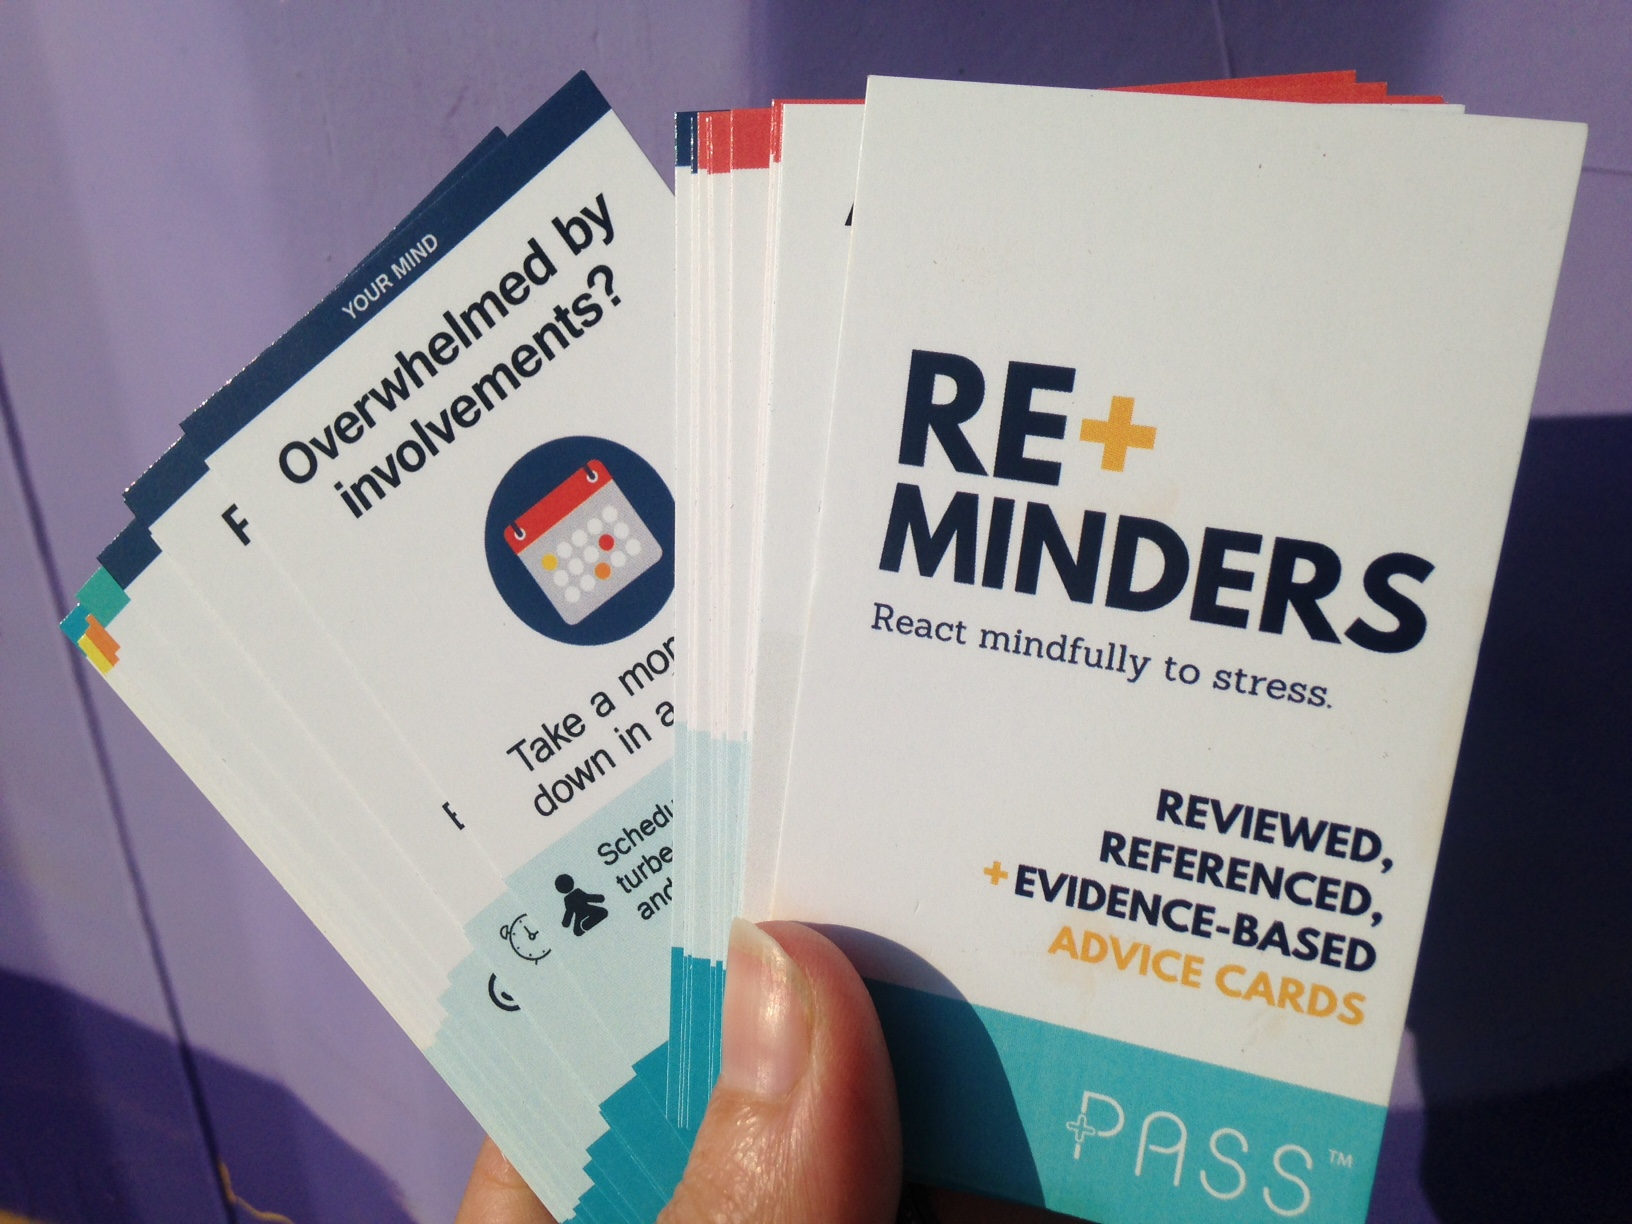 PASS RE+minder cards for Panic Anxiety Stress Support - Life Voice